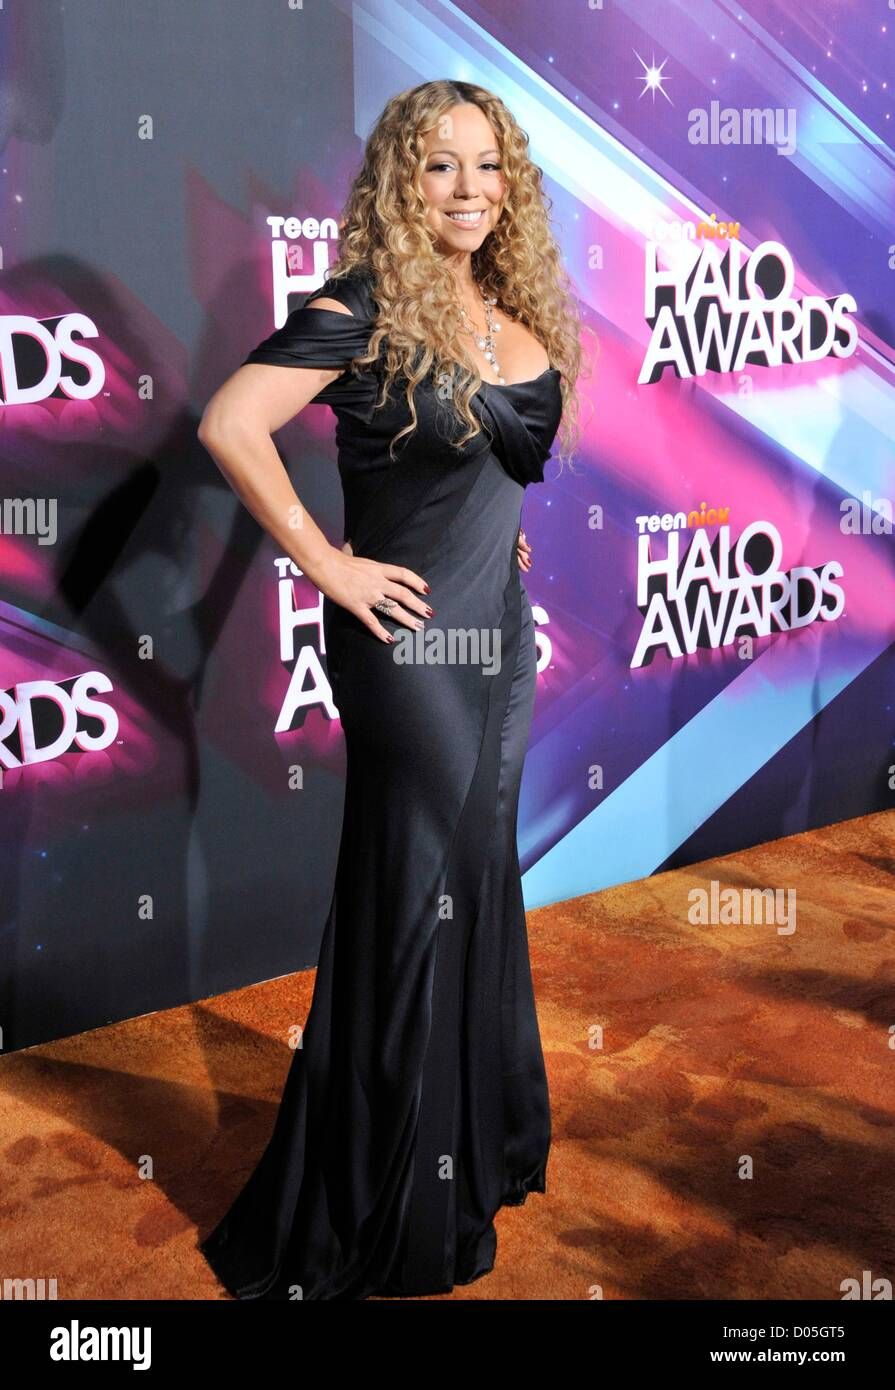 17. Mariah Carey 17. Mariah Carey new foto